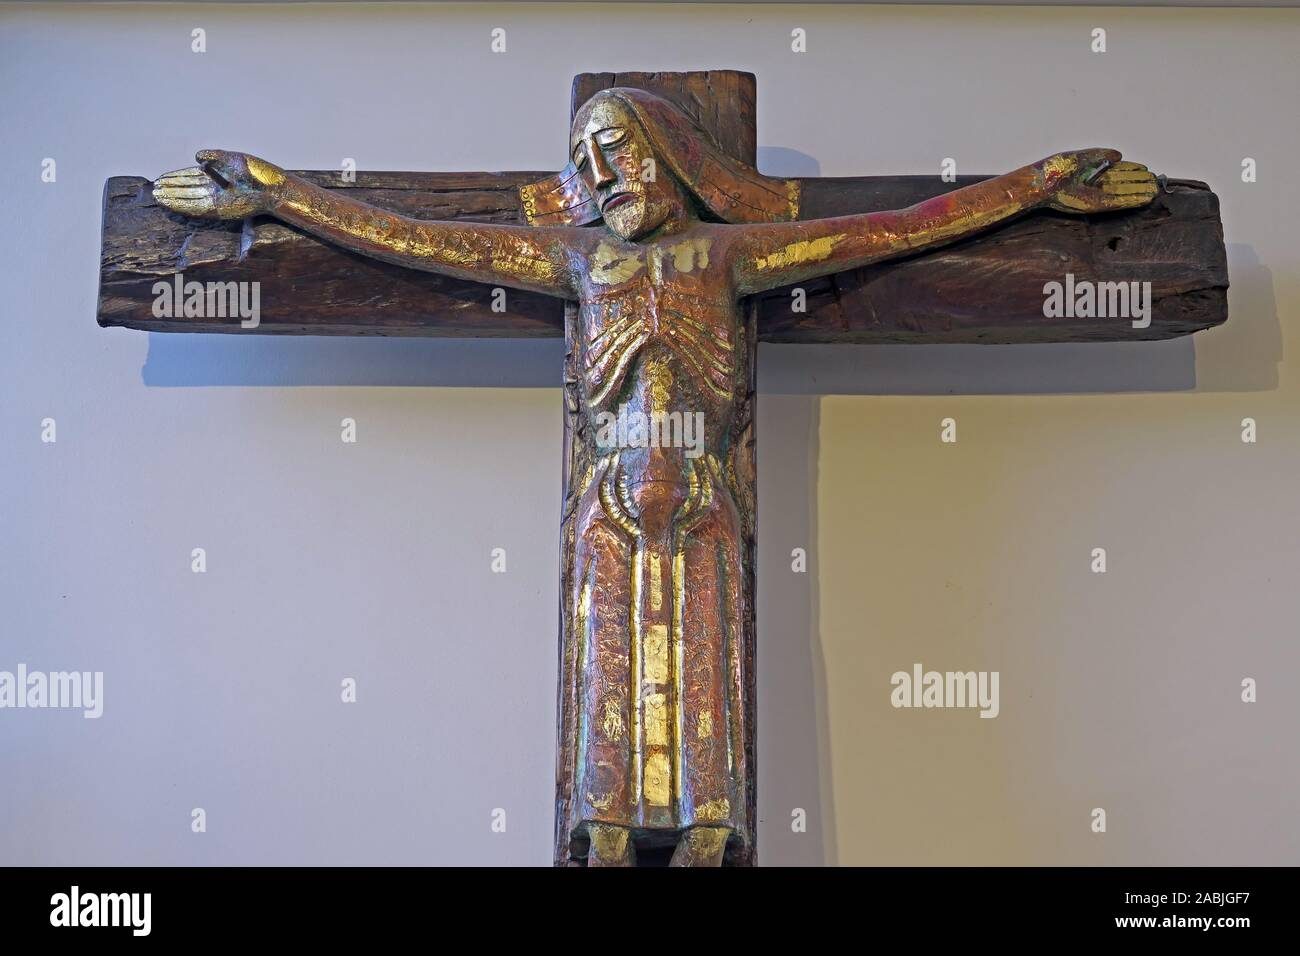 @HotpixUK,HotpixUK,GoTonySmith,UK,Birmingham,City Centre,West Midlands,England,Church of England,Anglican,cathedral,B3 2QB,city centre,St Philips Cathedral,Christianity,church,statue,modern,contemporary religion,Christ,Crucifix